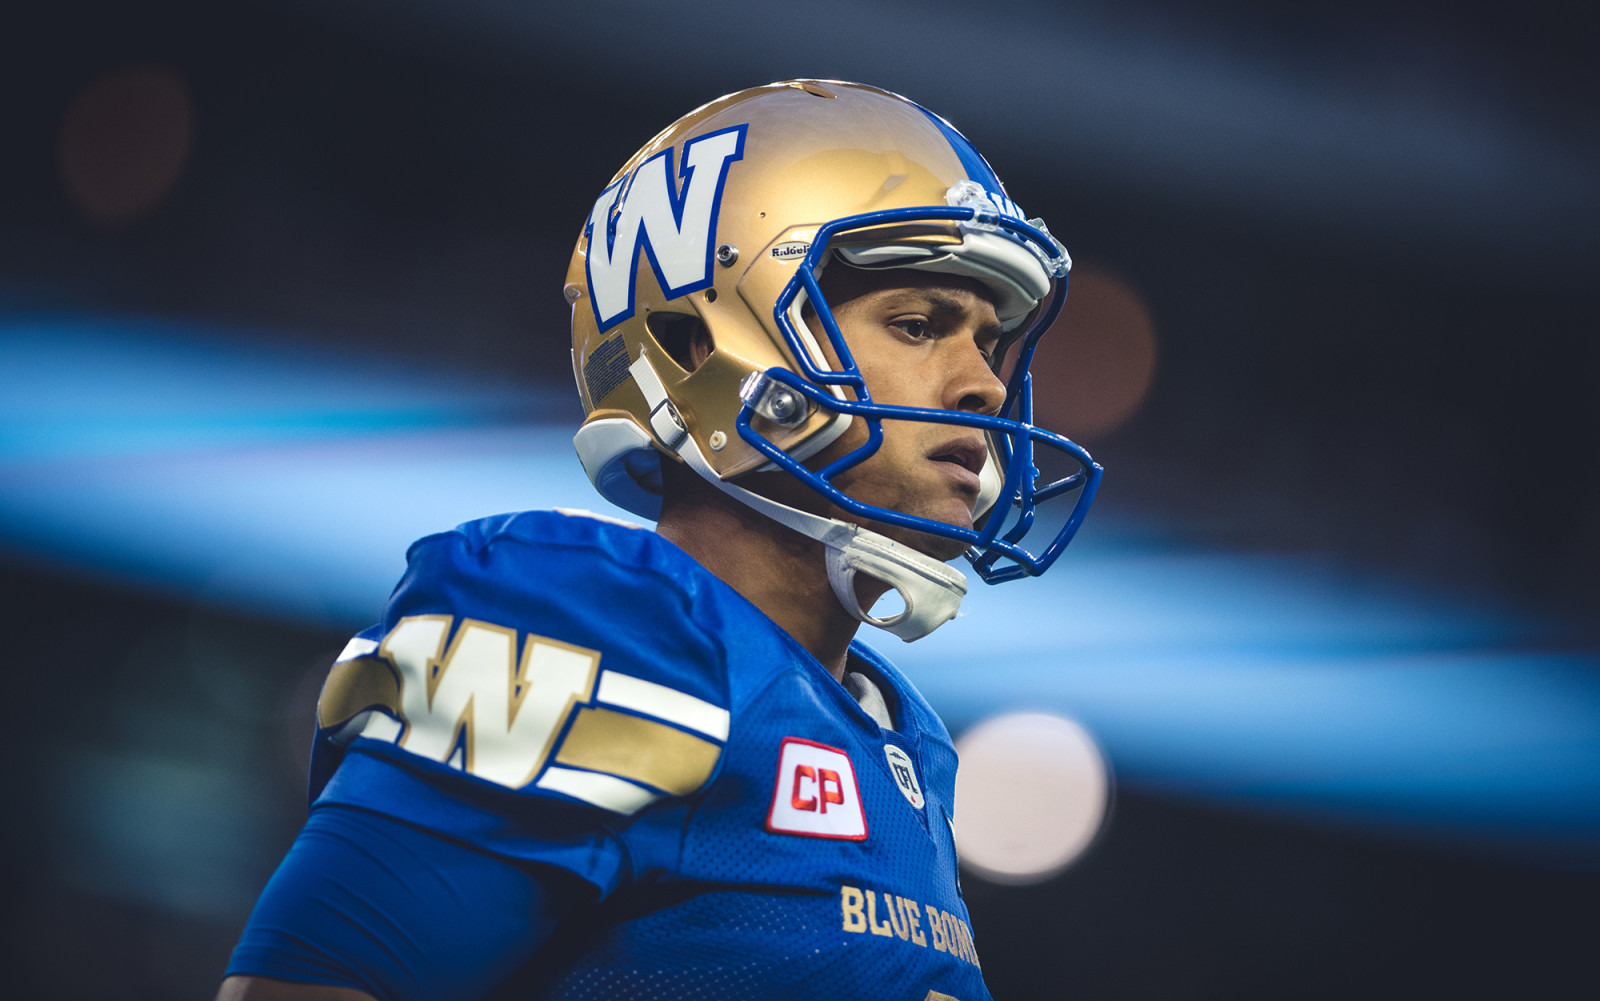 Justin Medlock (9) of the Winnipeg Blue Bombers during the game against the Montreal Alouettes at Investors Group Field in Winnipeg, MB. on Friday, June 24, 2016. (Photo: Johany Jutras)